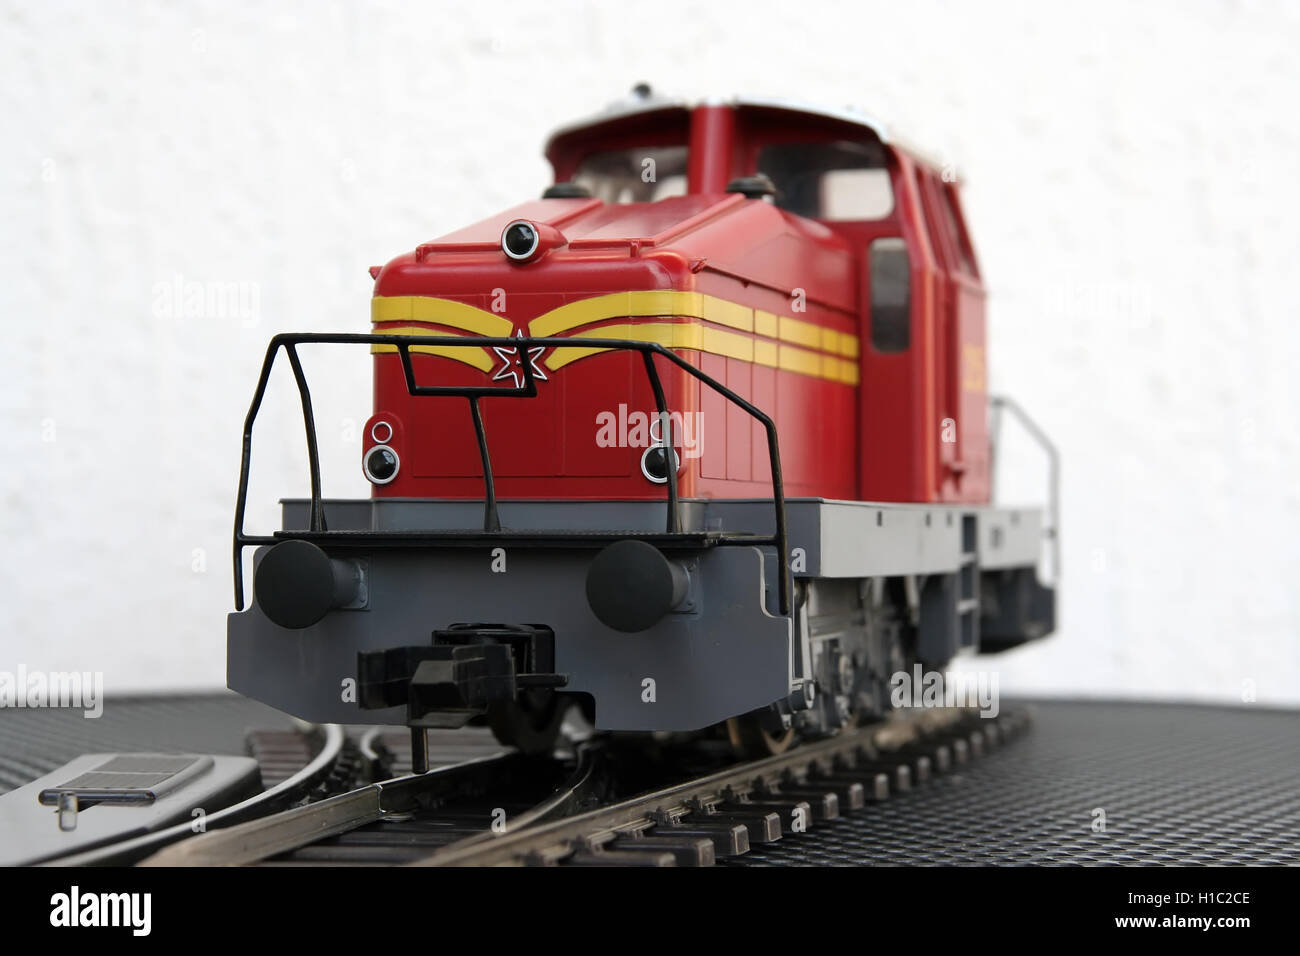 Red Locomotive miniature model. Red locomotive toy model. Stock Photo